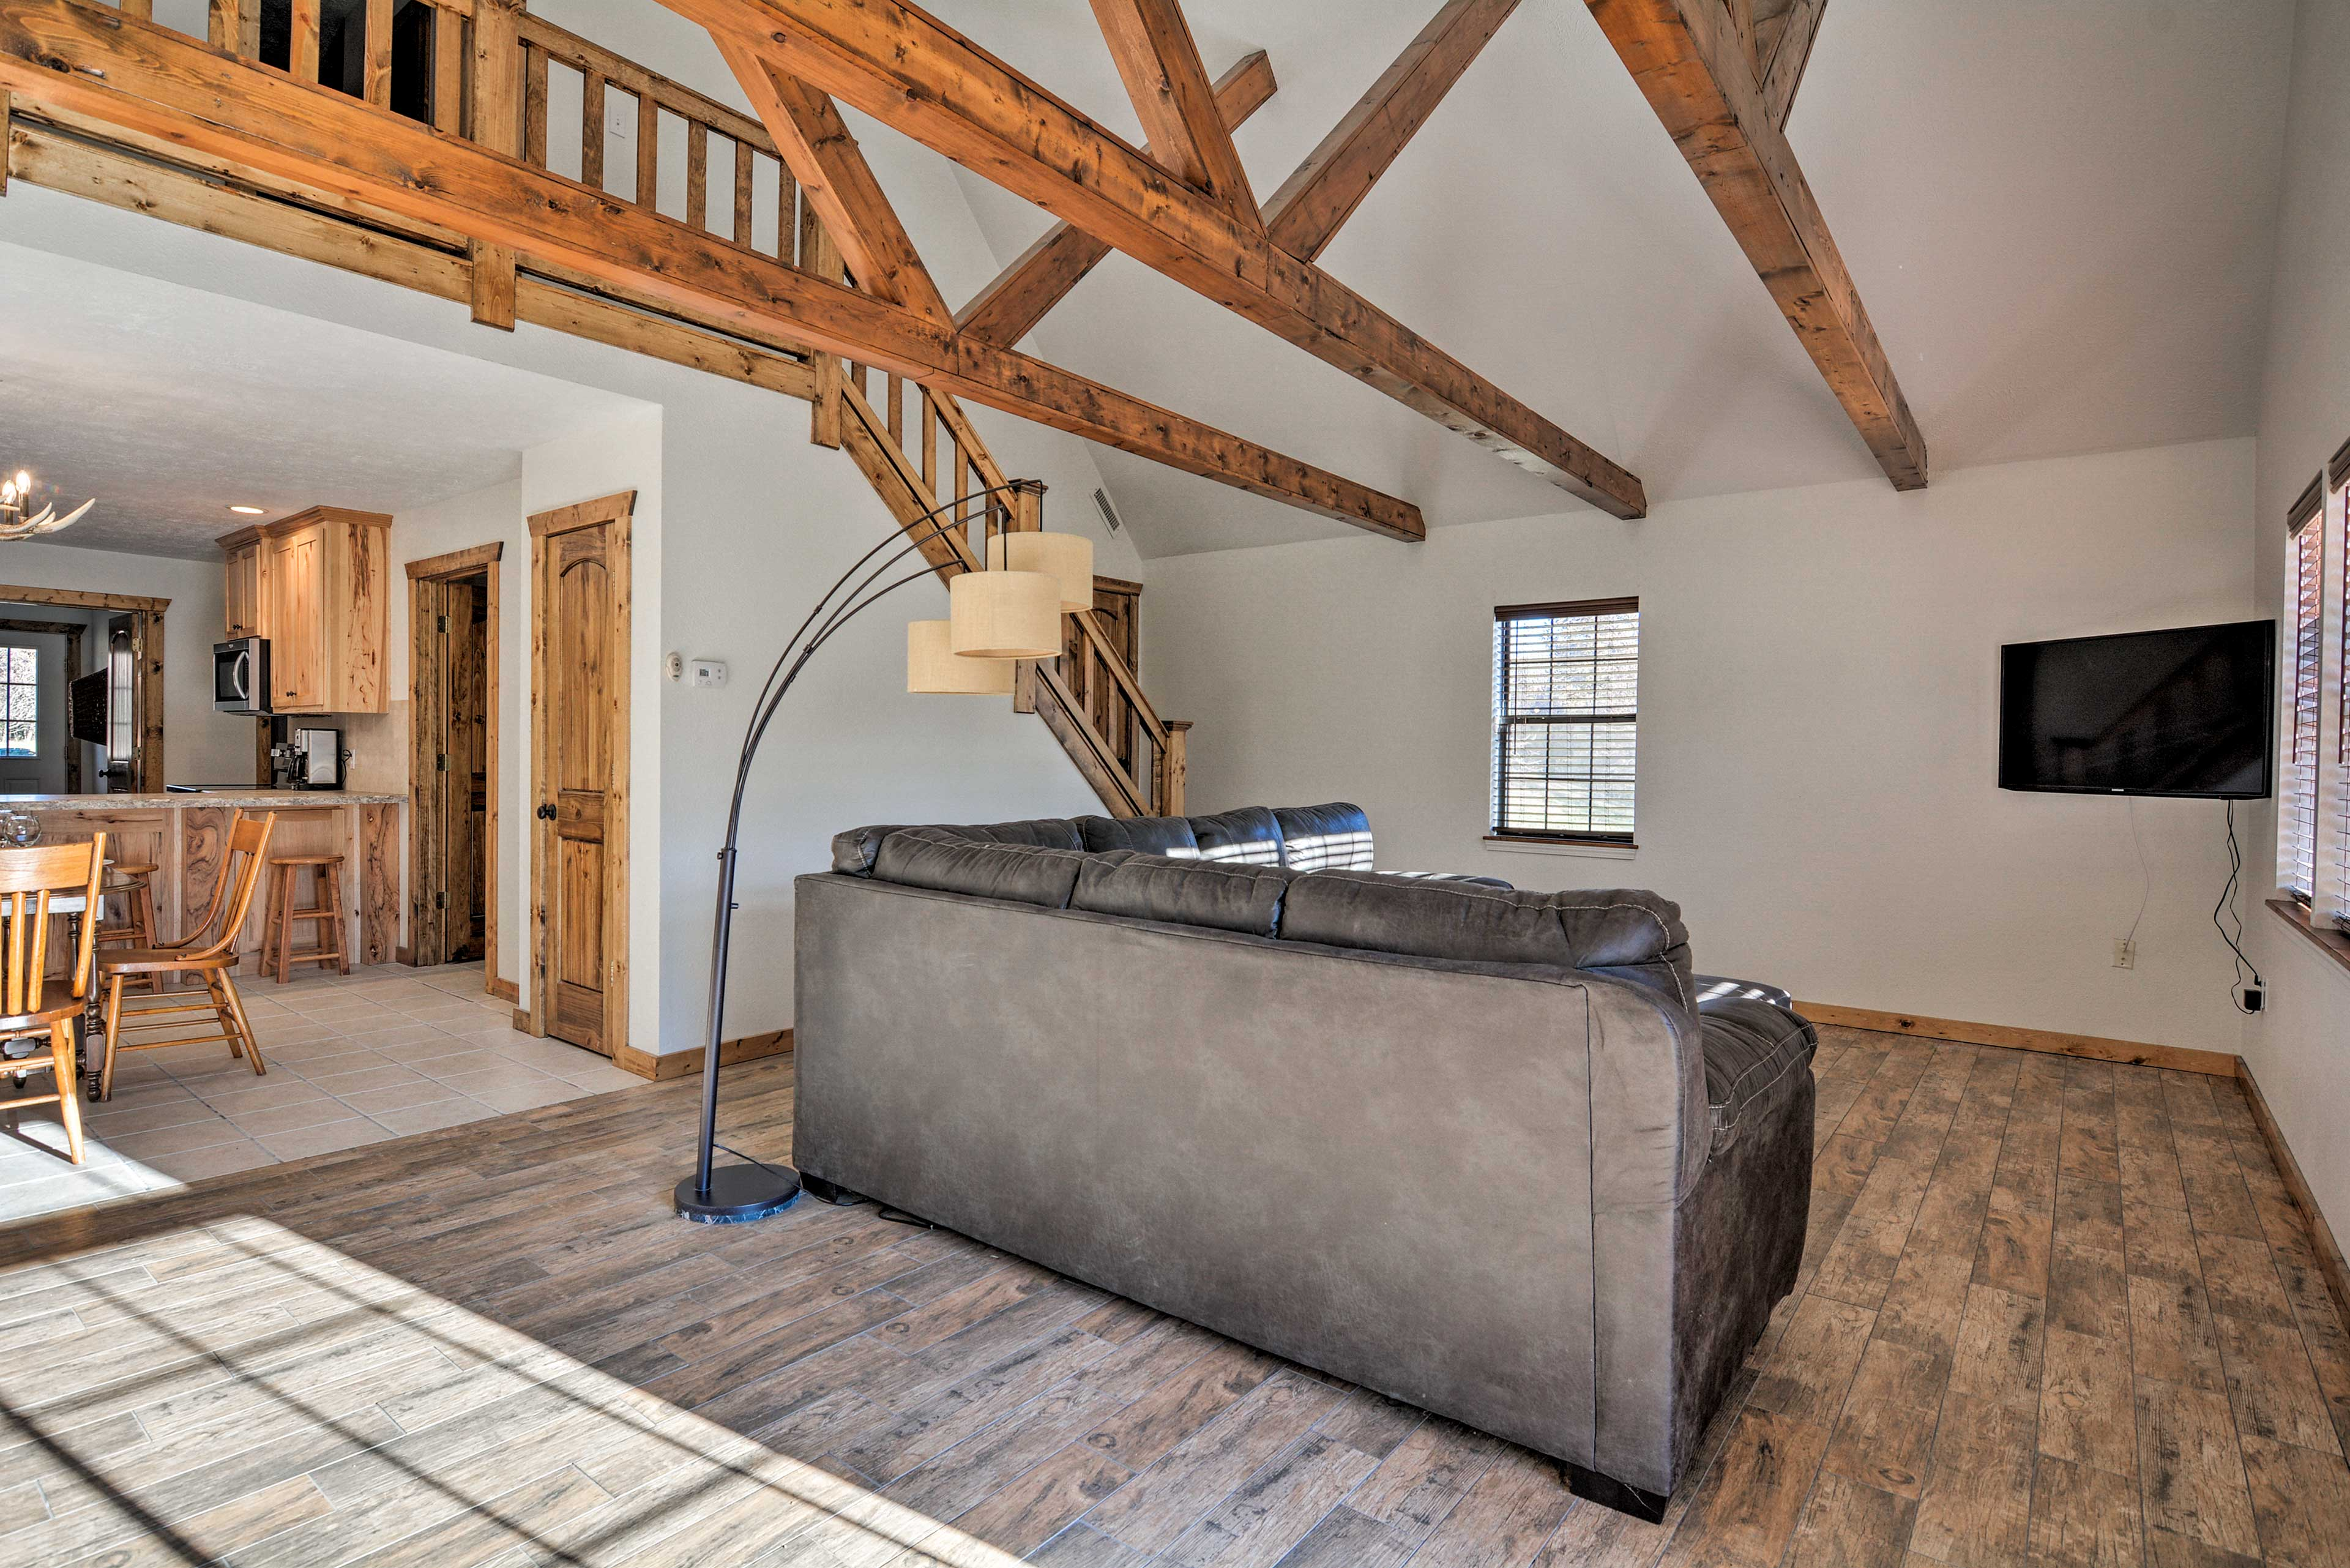 Cathedral ceilings make the home feel incredibly spacious.